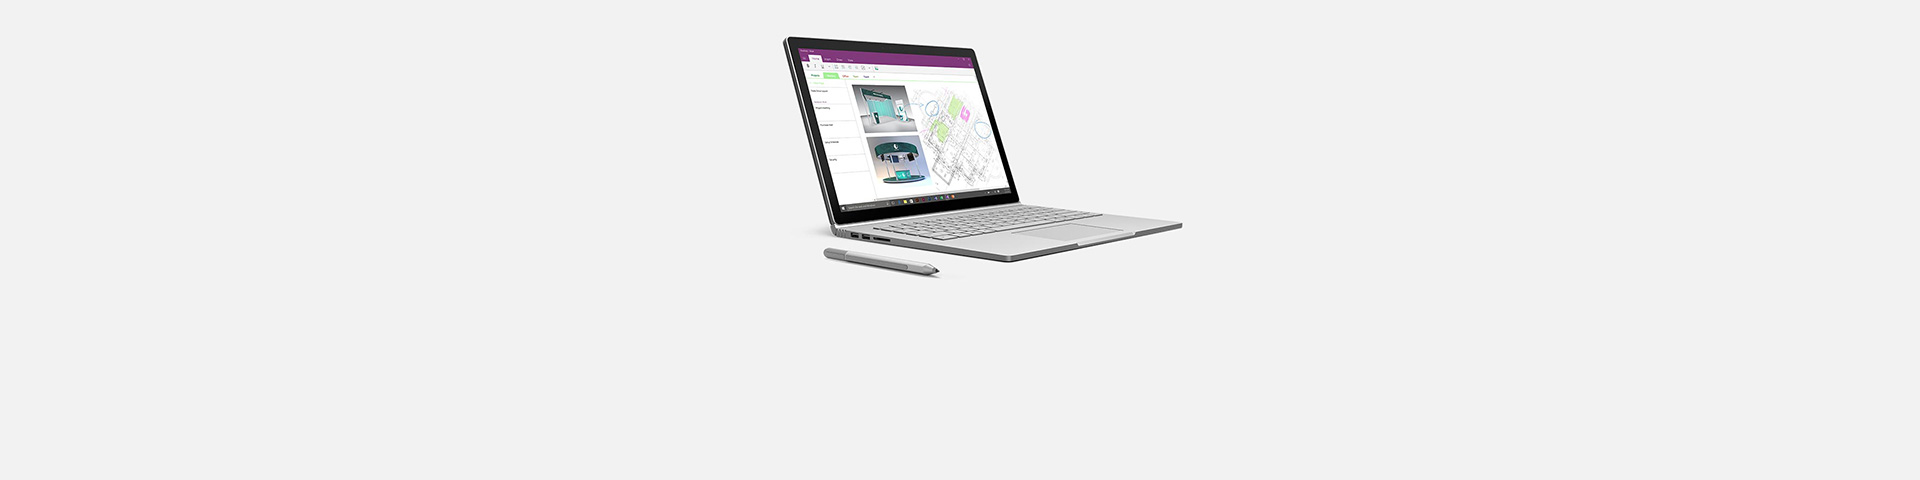 Un Surface Book